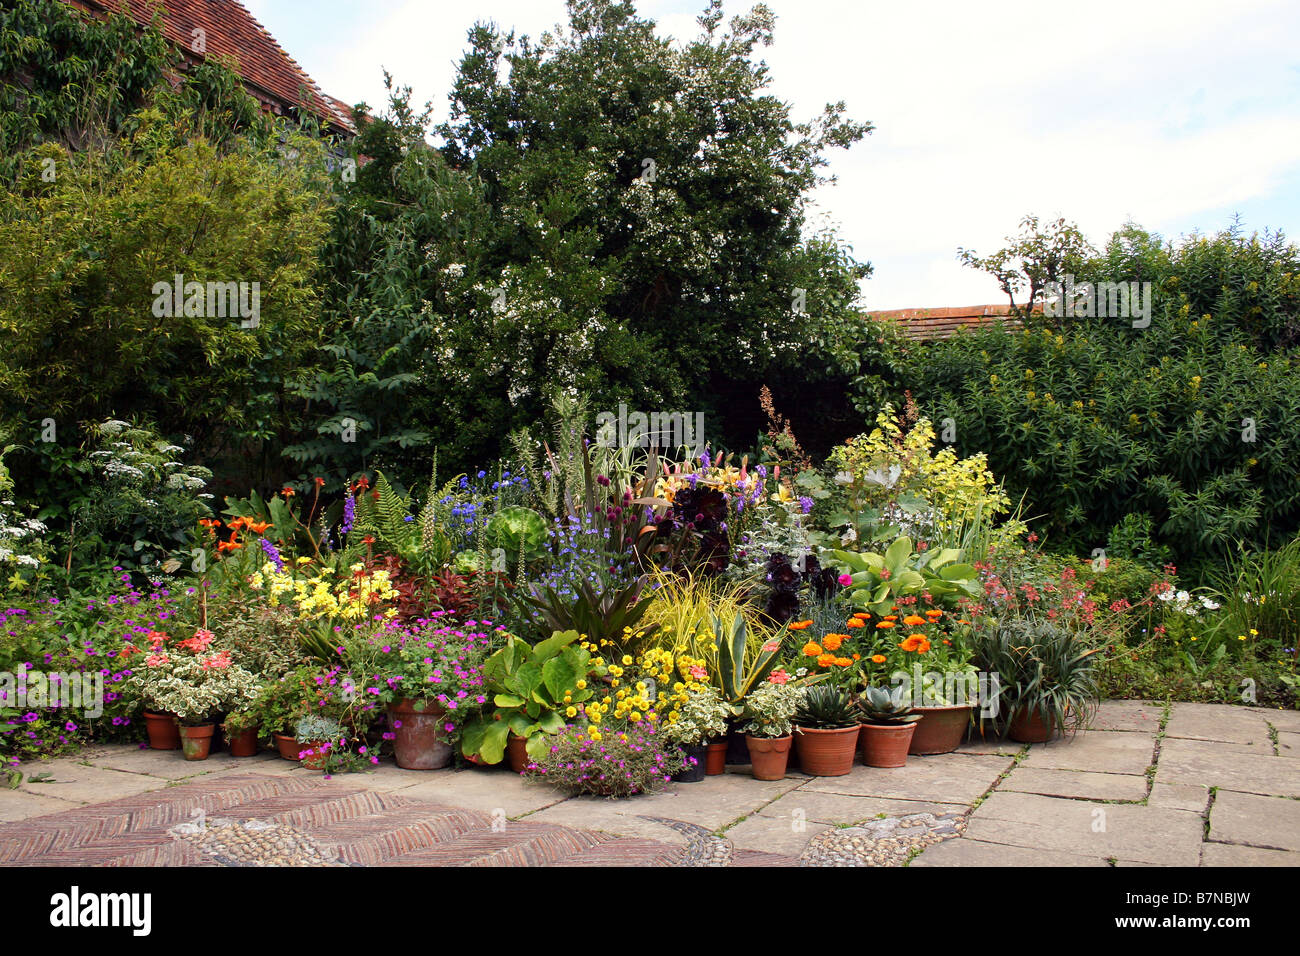 Colourful Summer Pot Plants Add To A Paved Area Within An